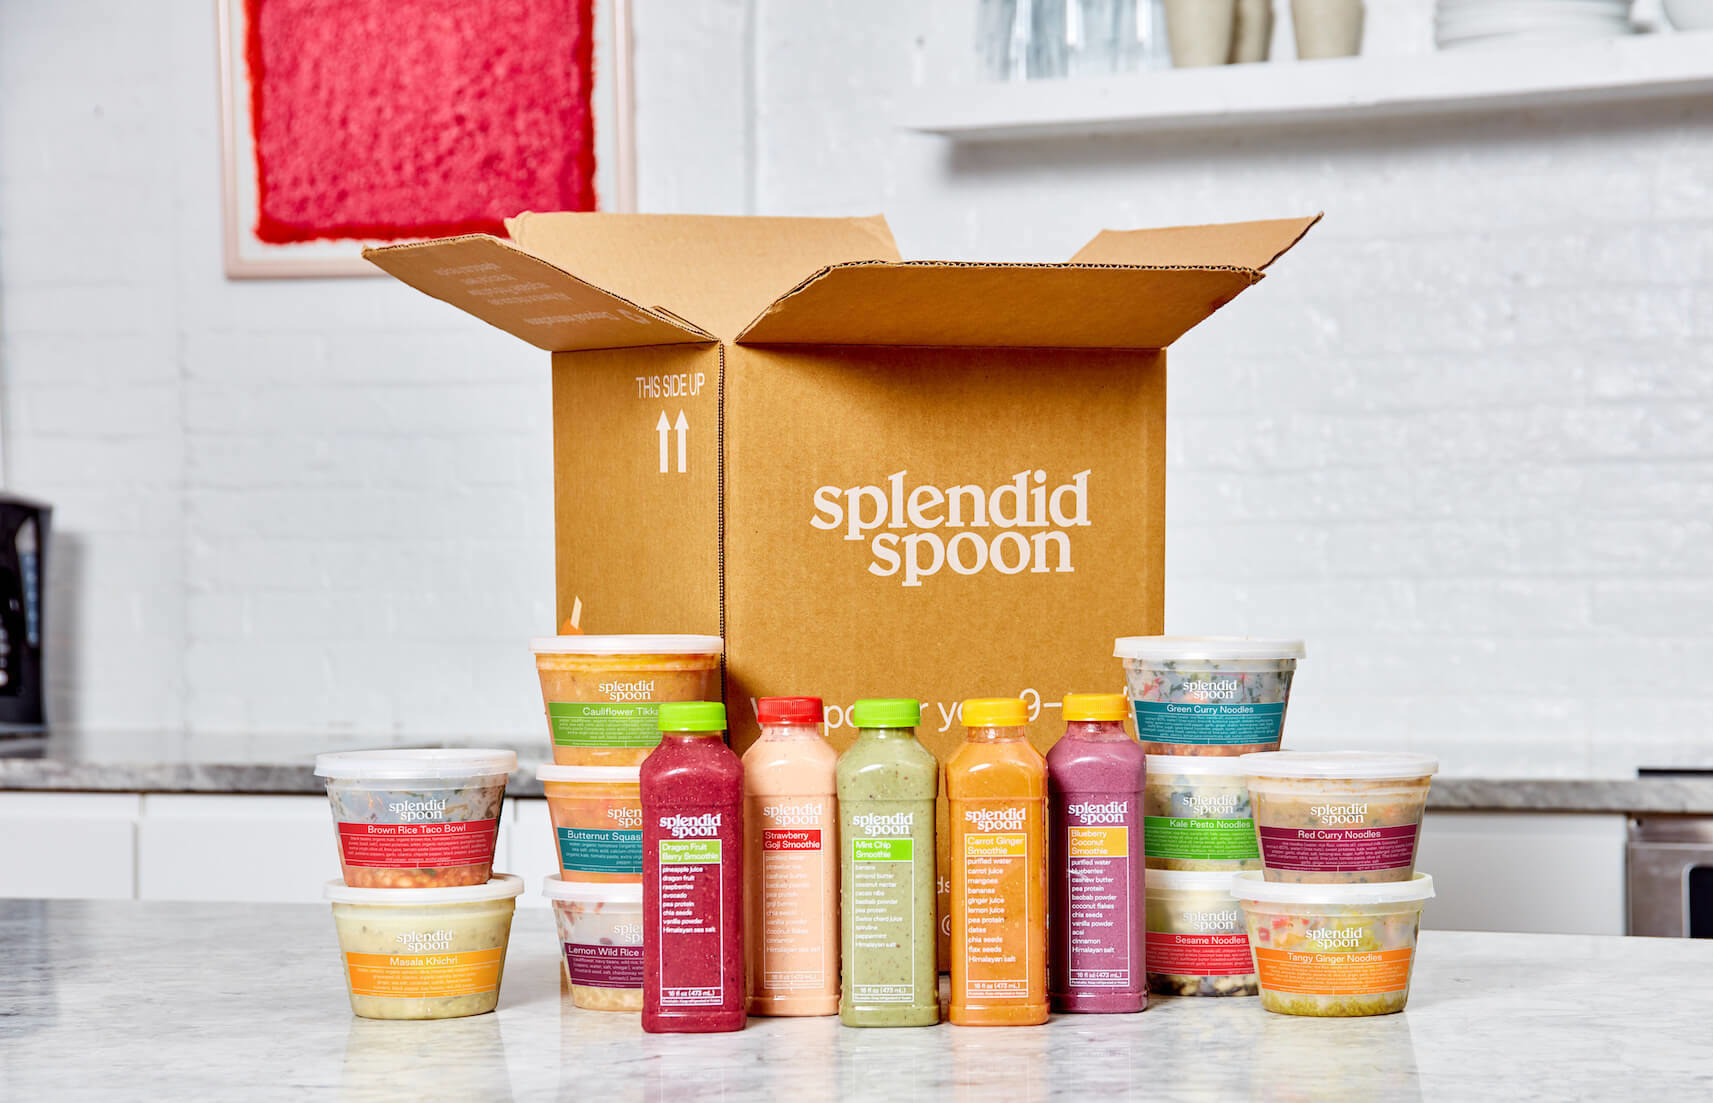 a splendid spoon box with smoothies and soups